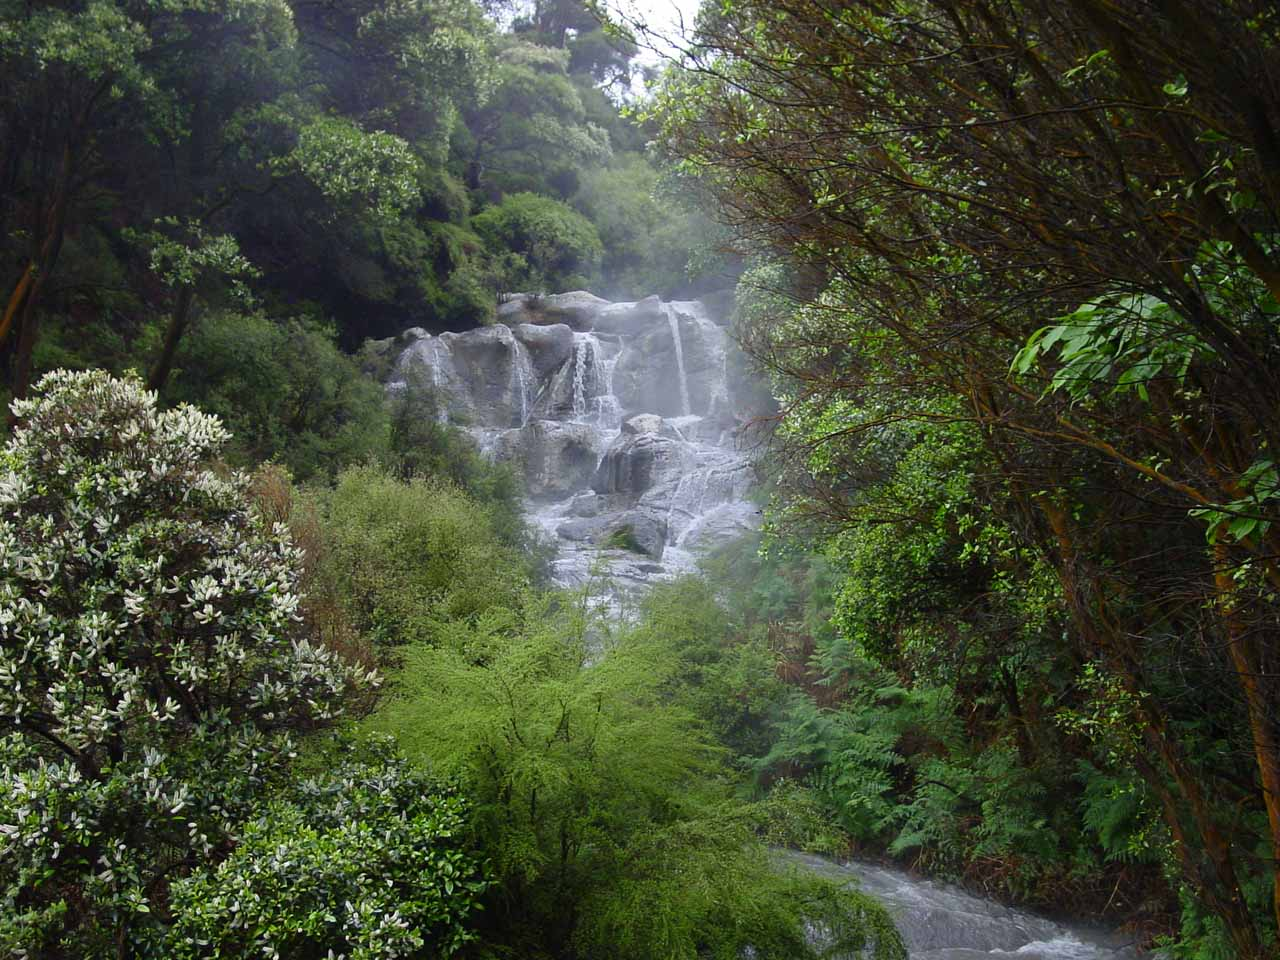 Our first look at Kakahi Falls